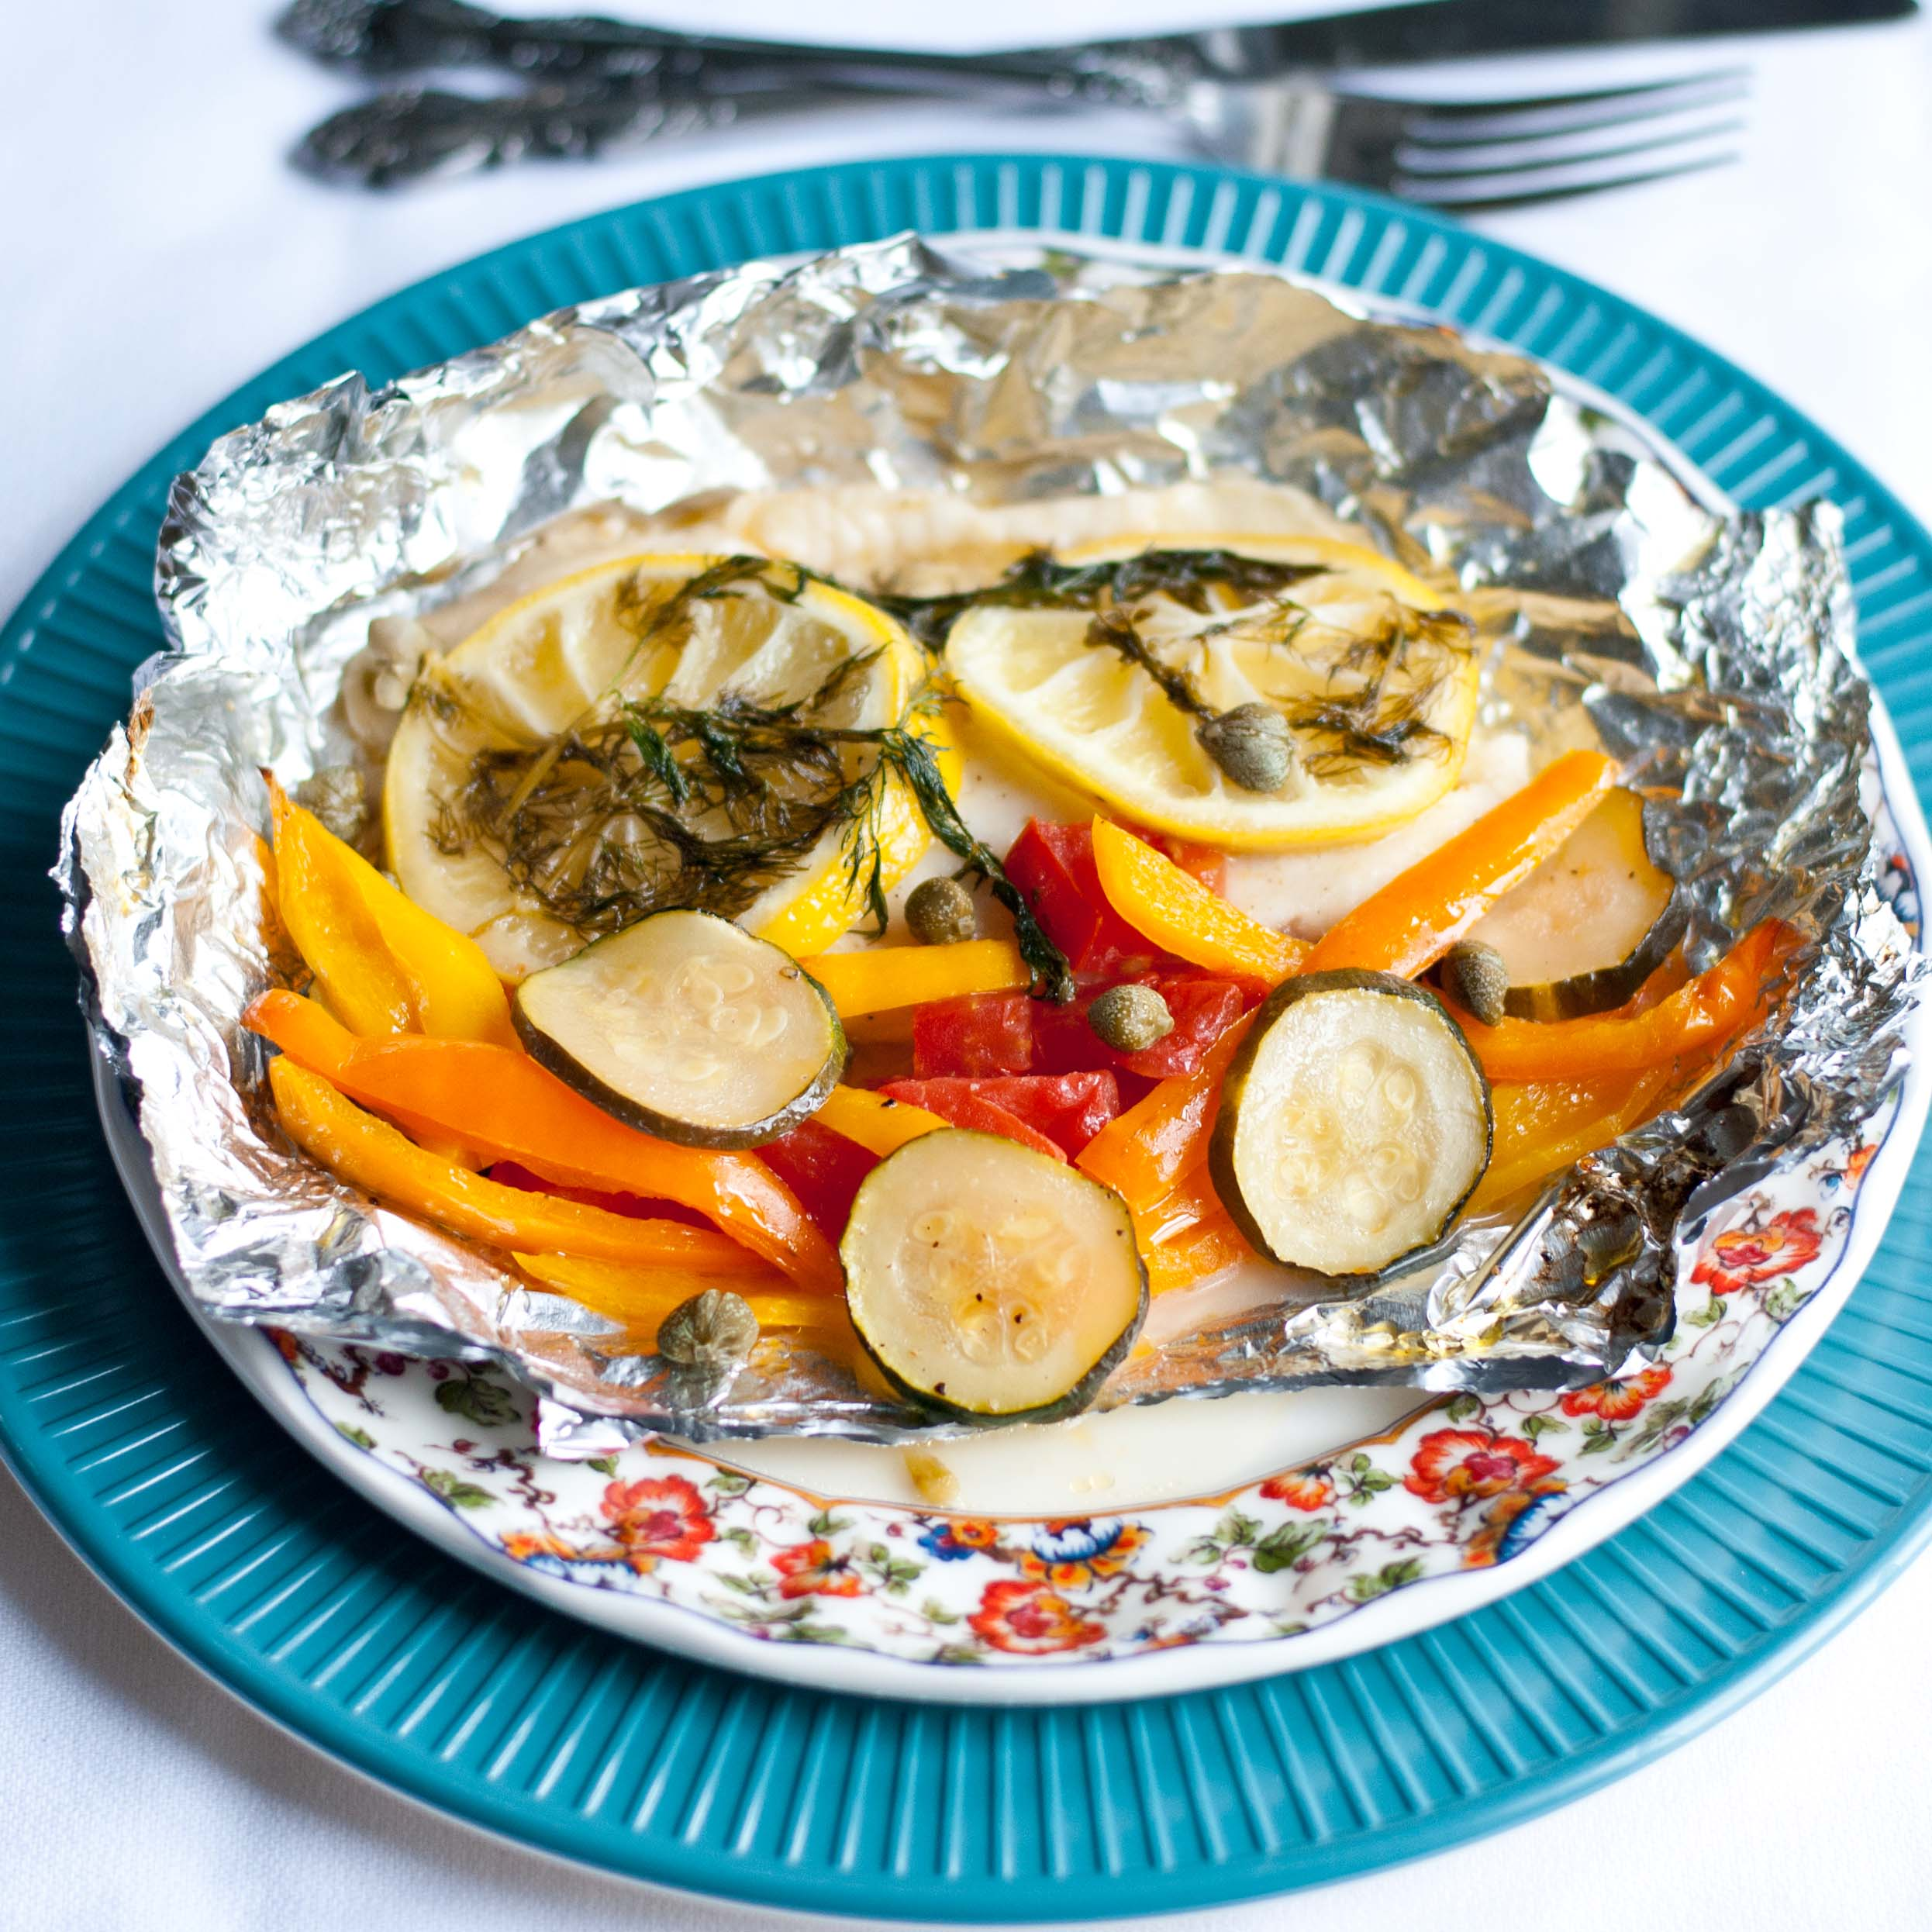 Grilled Lemon Tilapia in a Foil Packet